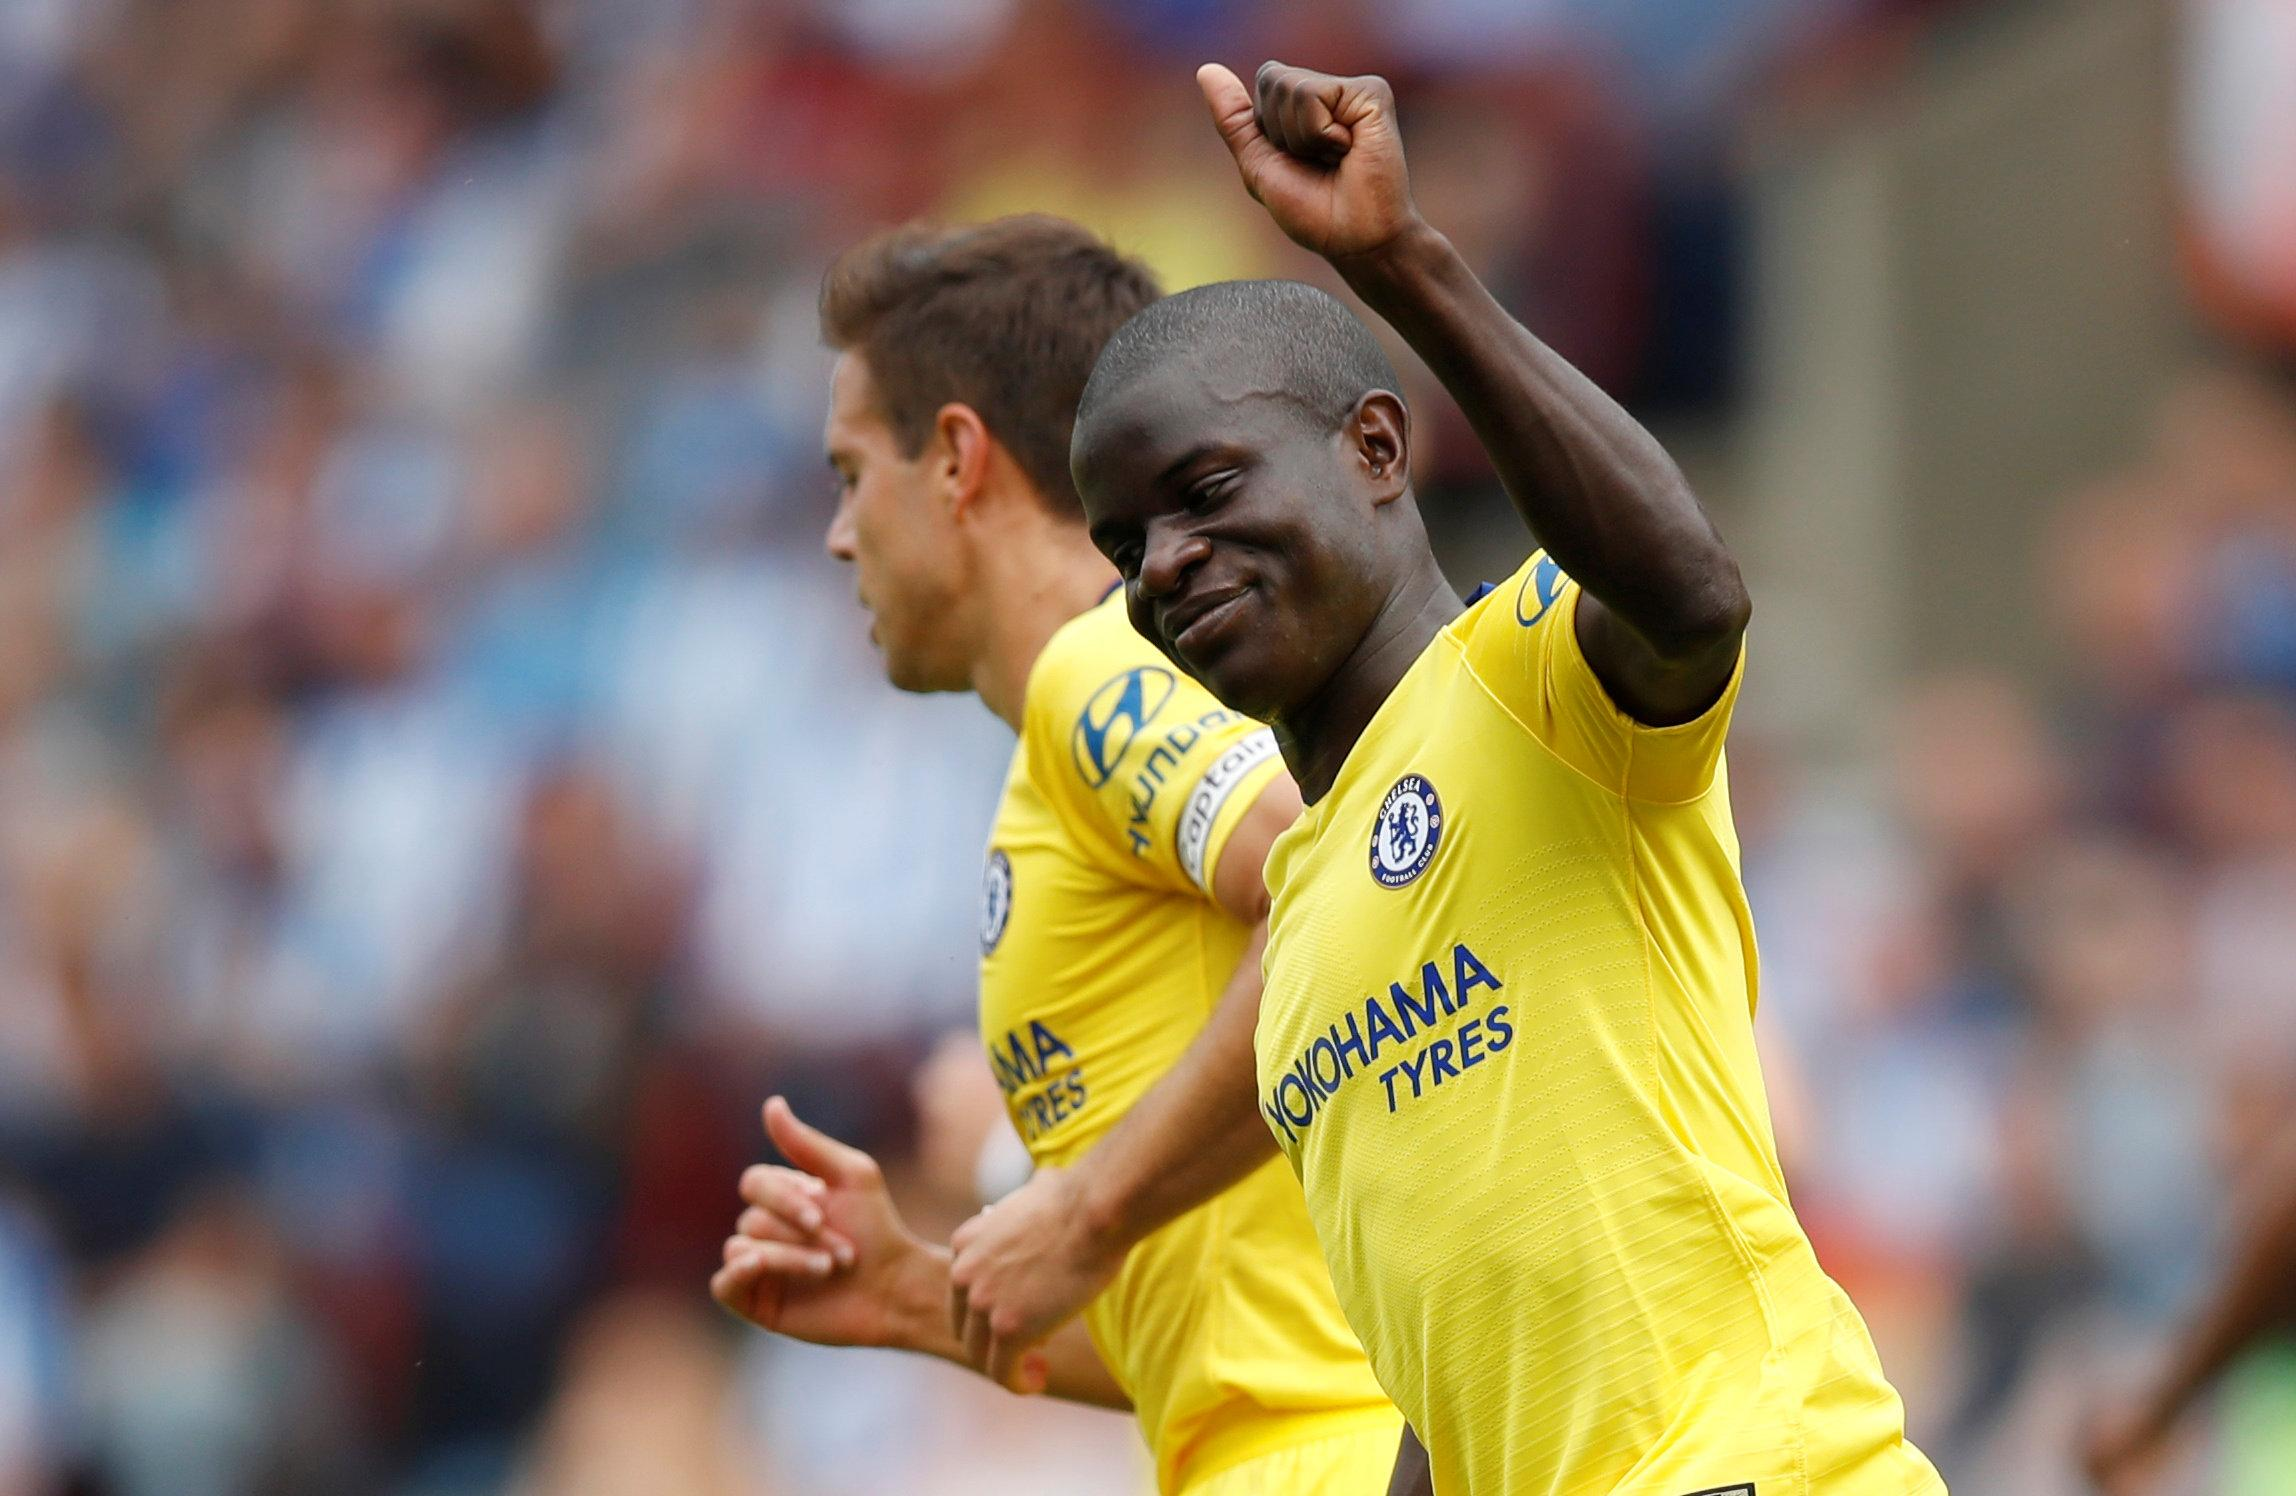 Premier League chiefs fear Brexit will prevent clubs from signing the next N'Golo Kante